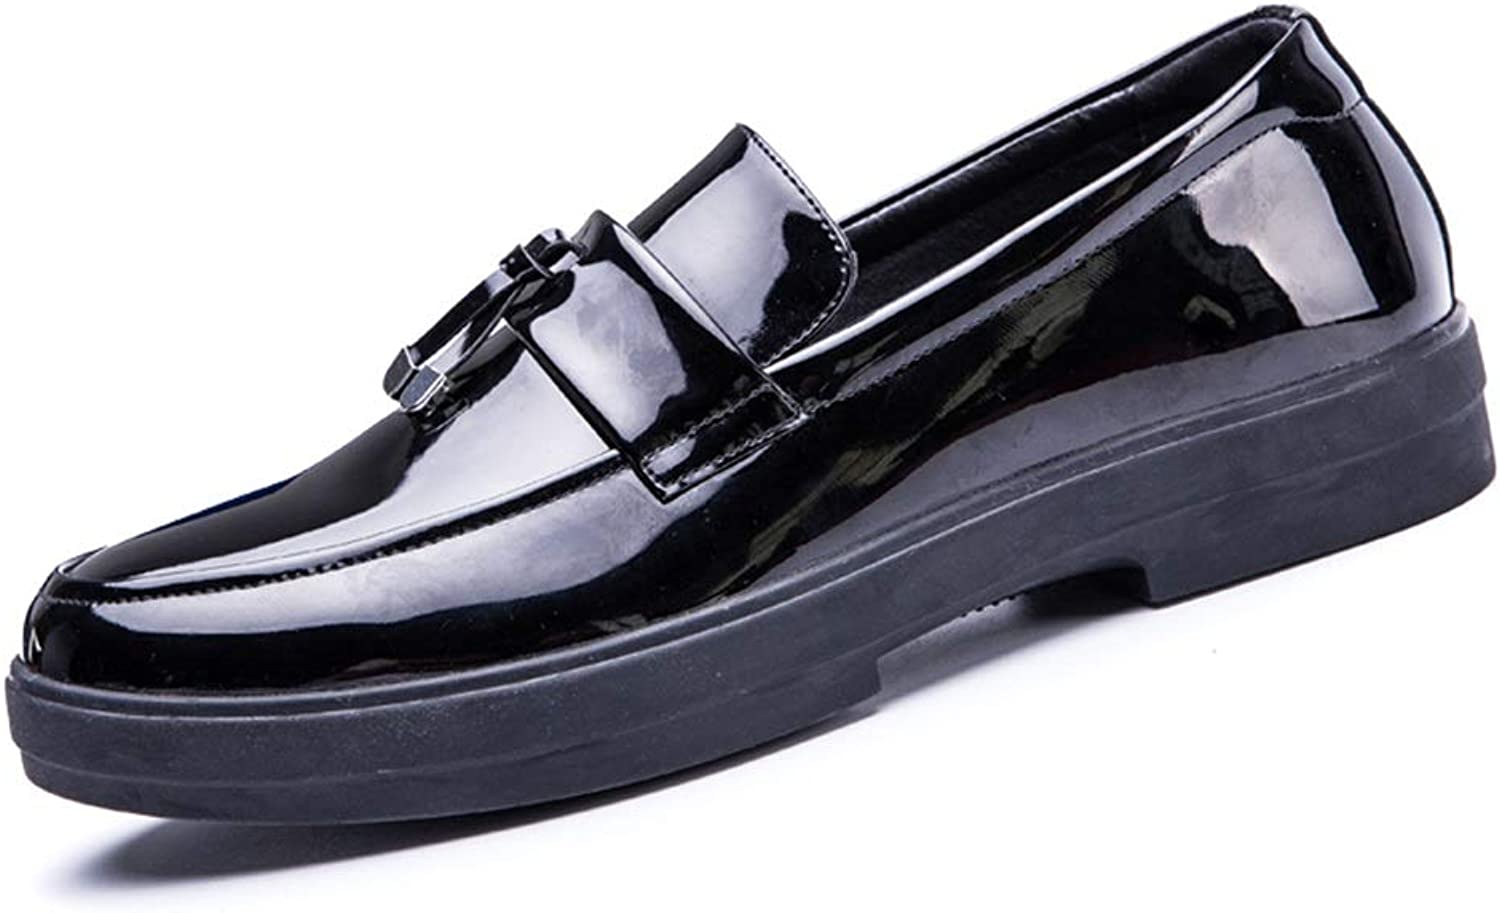 Mens Business Patent Oxfords Slip On shoes Microfiber Leather Leisure Classic Casual Loafers Tassel Flat Anti-Slip Round Toe Cricket shoes